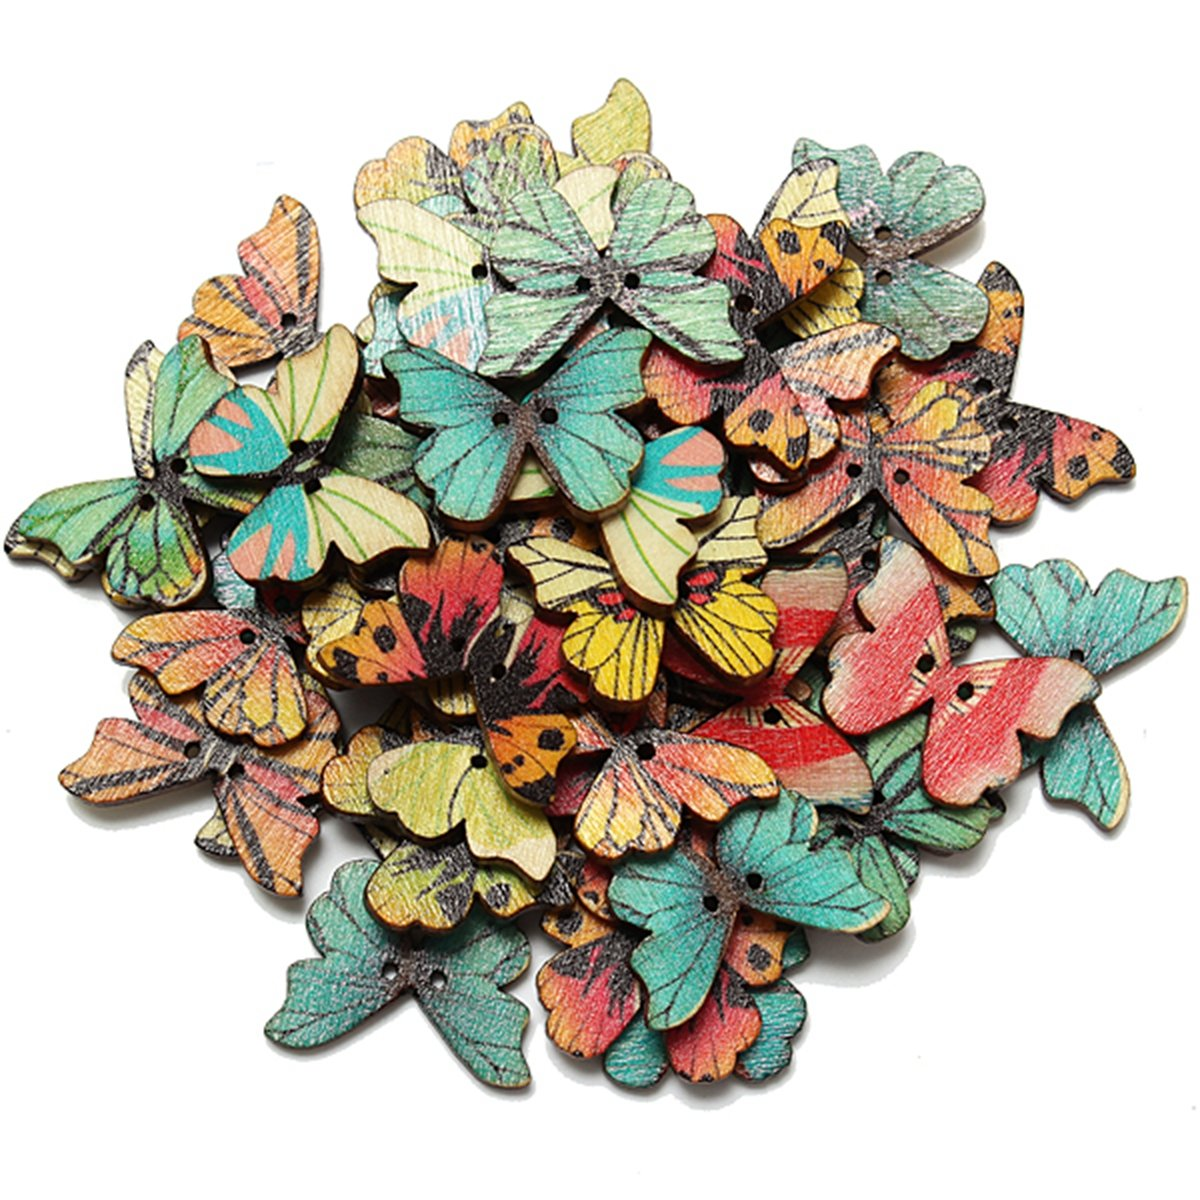 KINGSO 50pcs 2 Holes Mixed Butterfly Wooden Button Sewing Scrapbooking DIY Craft by King So KINGSO Co. LTD